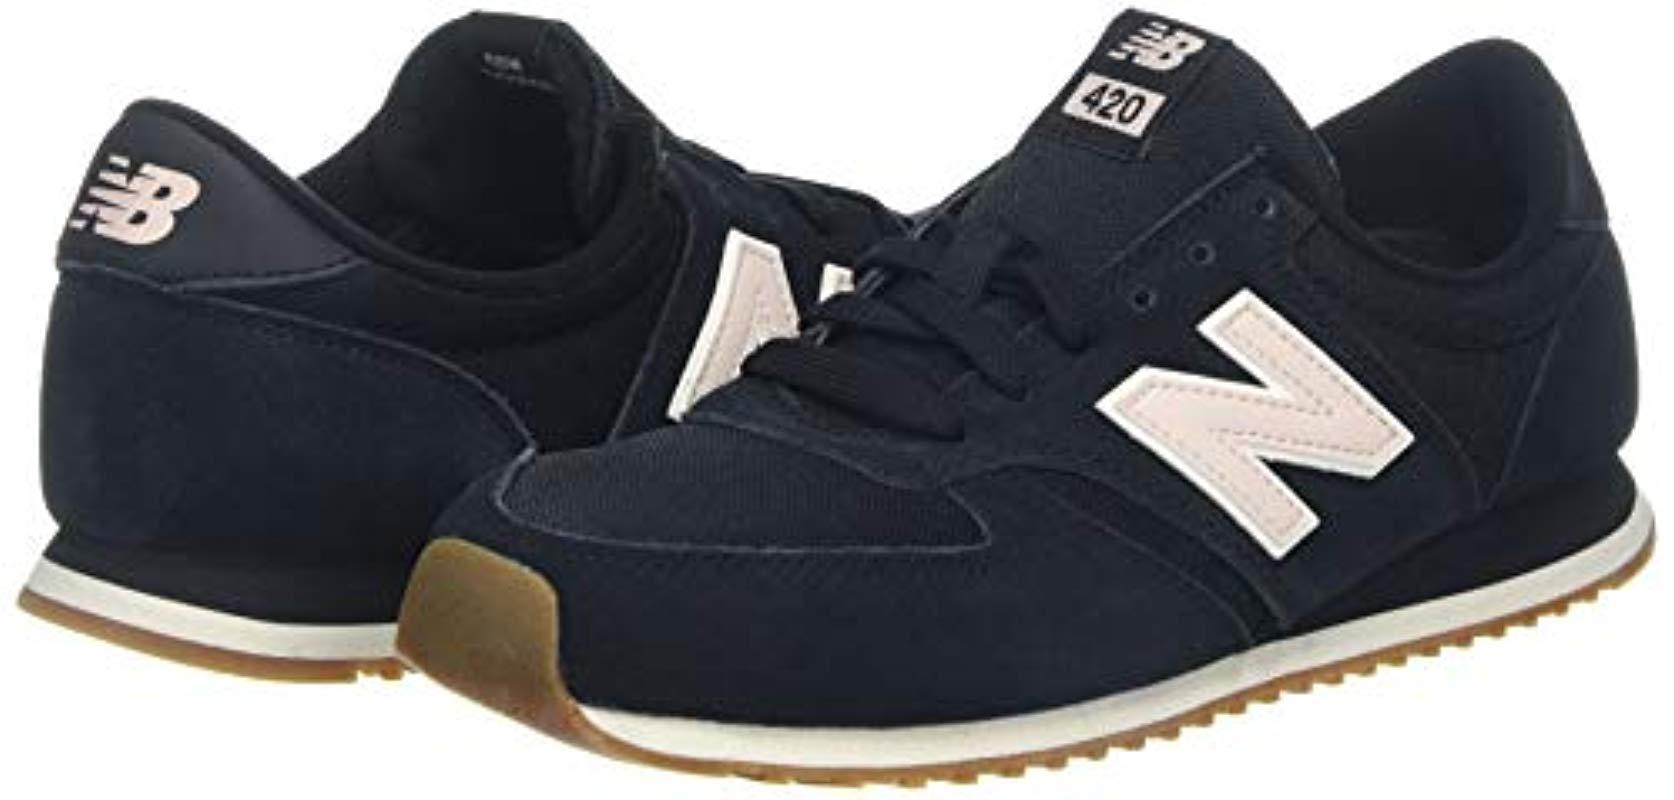 New Balance 420v1 Lifestyle Sneaker in